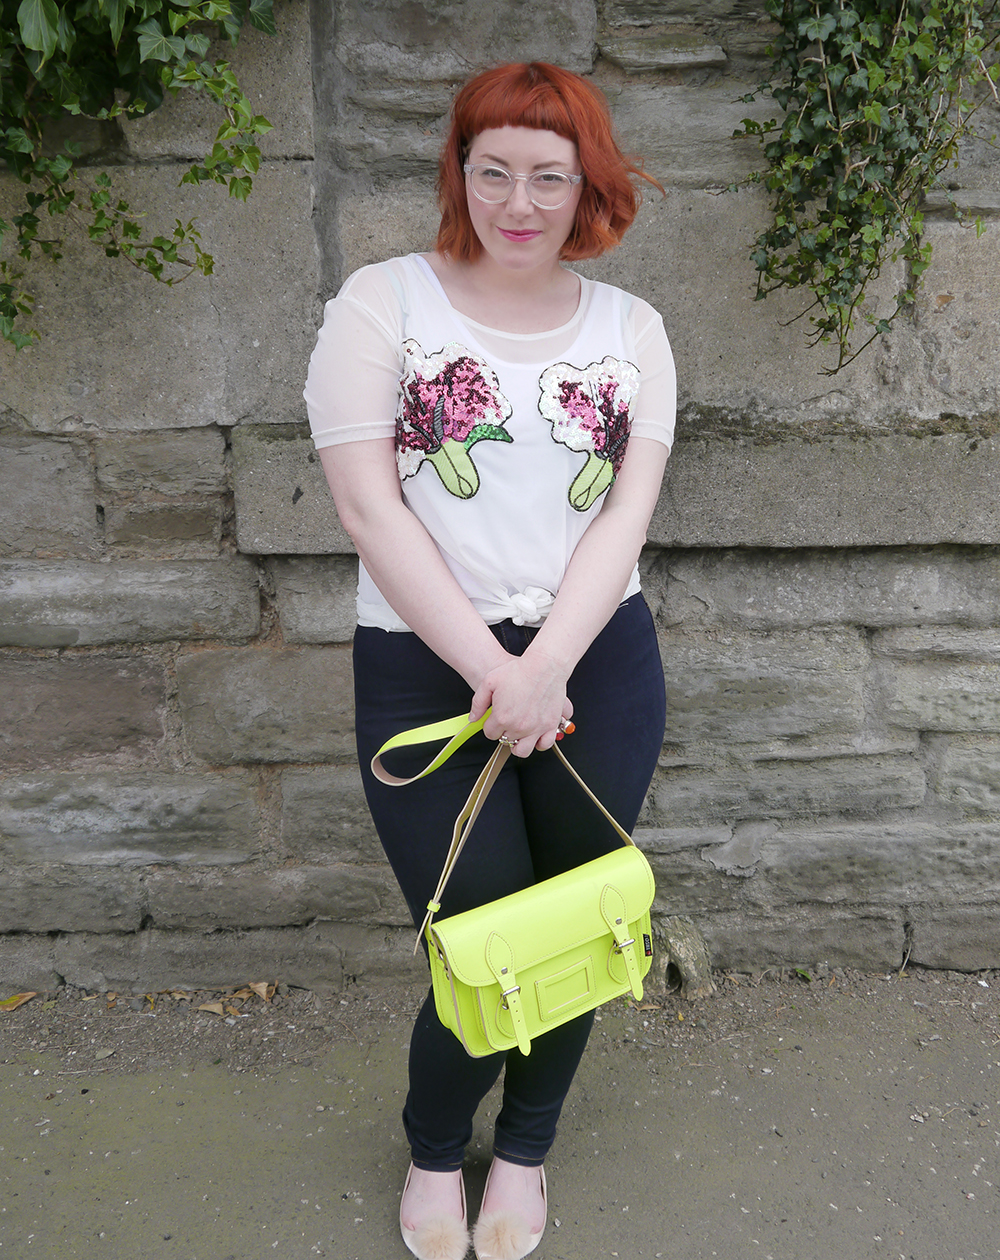 styled by Helen, Scottish blogger, Dundee blogger, red head, ginger hair, short ginger hair, Iolla glasses, #seewithiolla, Never Monday, day time sequins, sequin top, casual sequins, Yoshi satchel, neon yellow satchel, denim jean, pom pom shoes, pom pom flat shoes, pink pom pom shoes